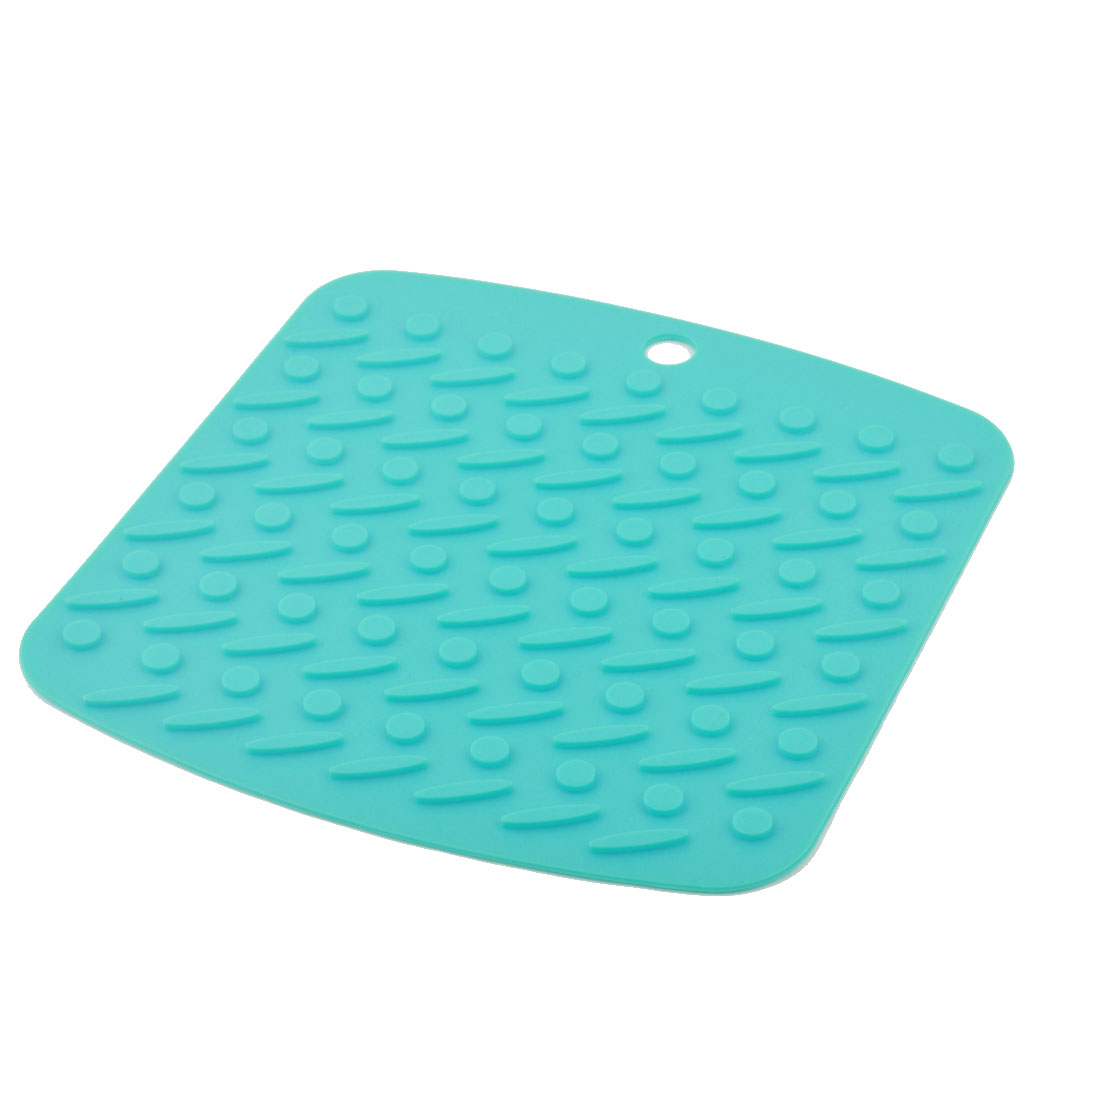 Silicone Nonslip Table Heat Resistant Mat Bowl Cup Cushion Placemat Pad Cyan